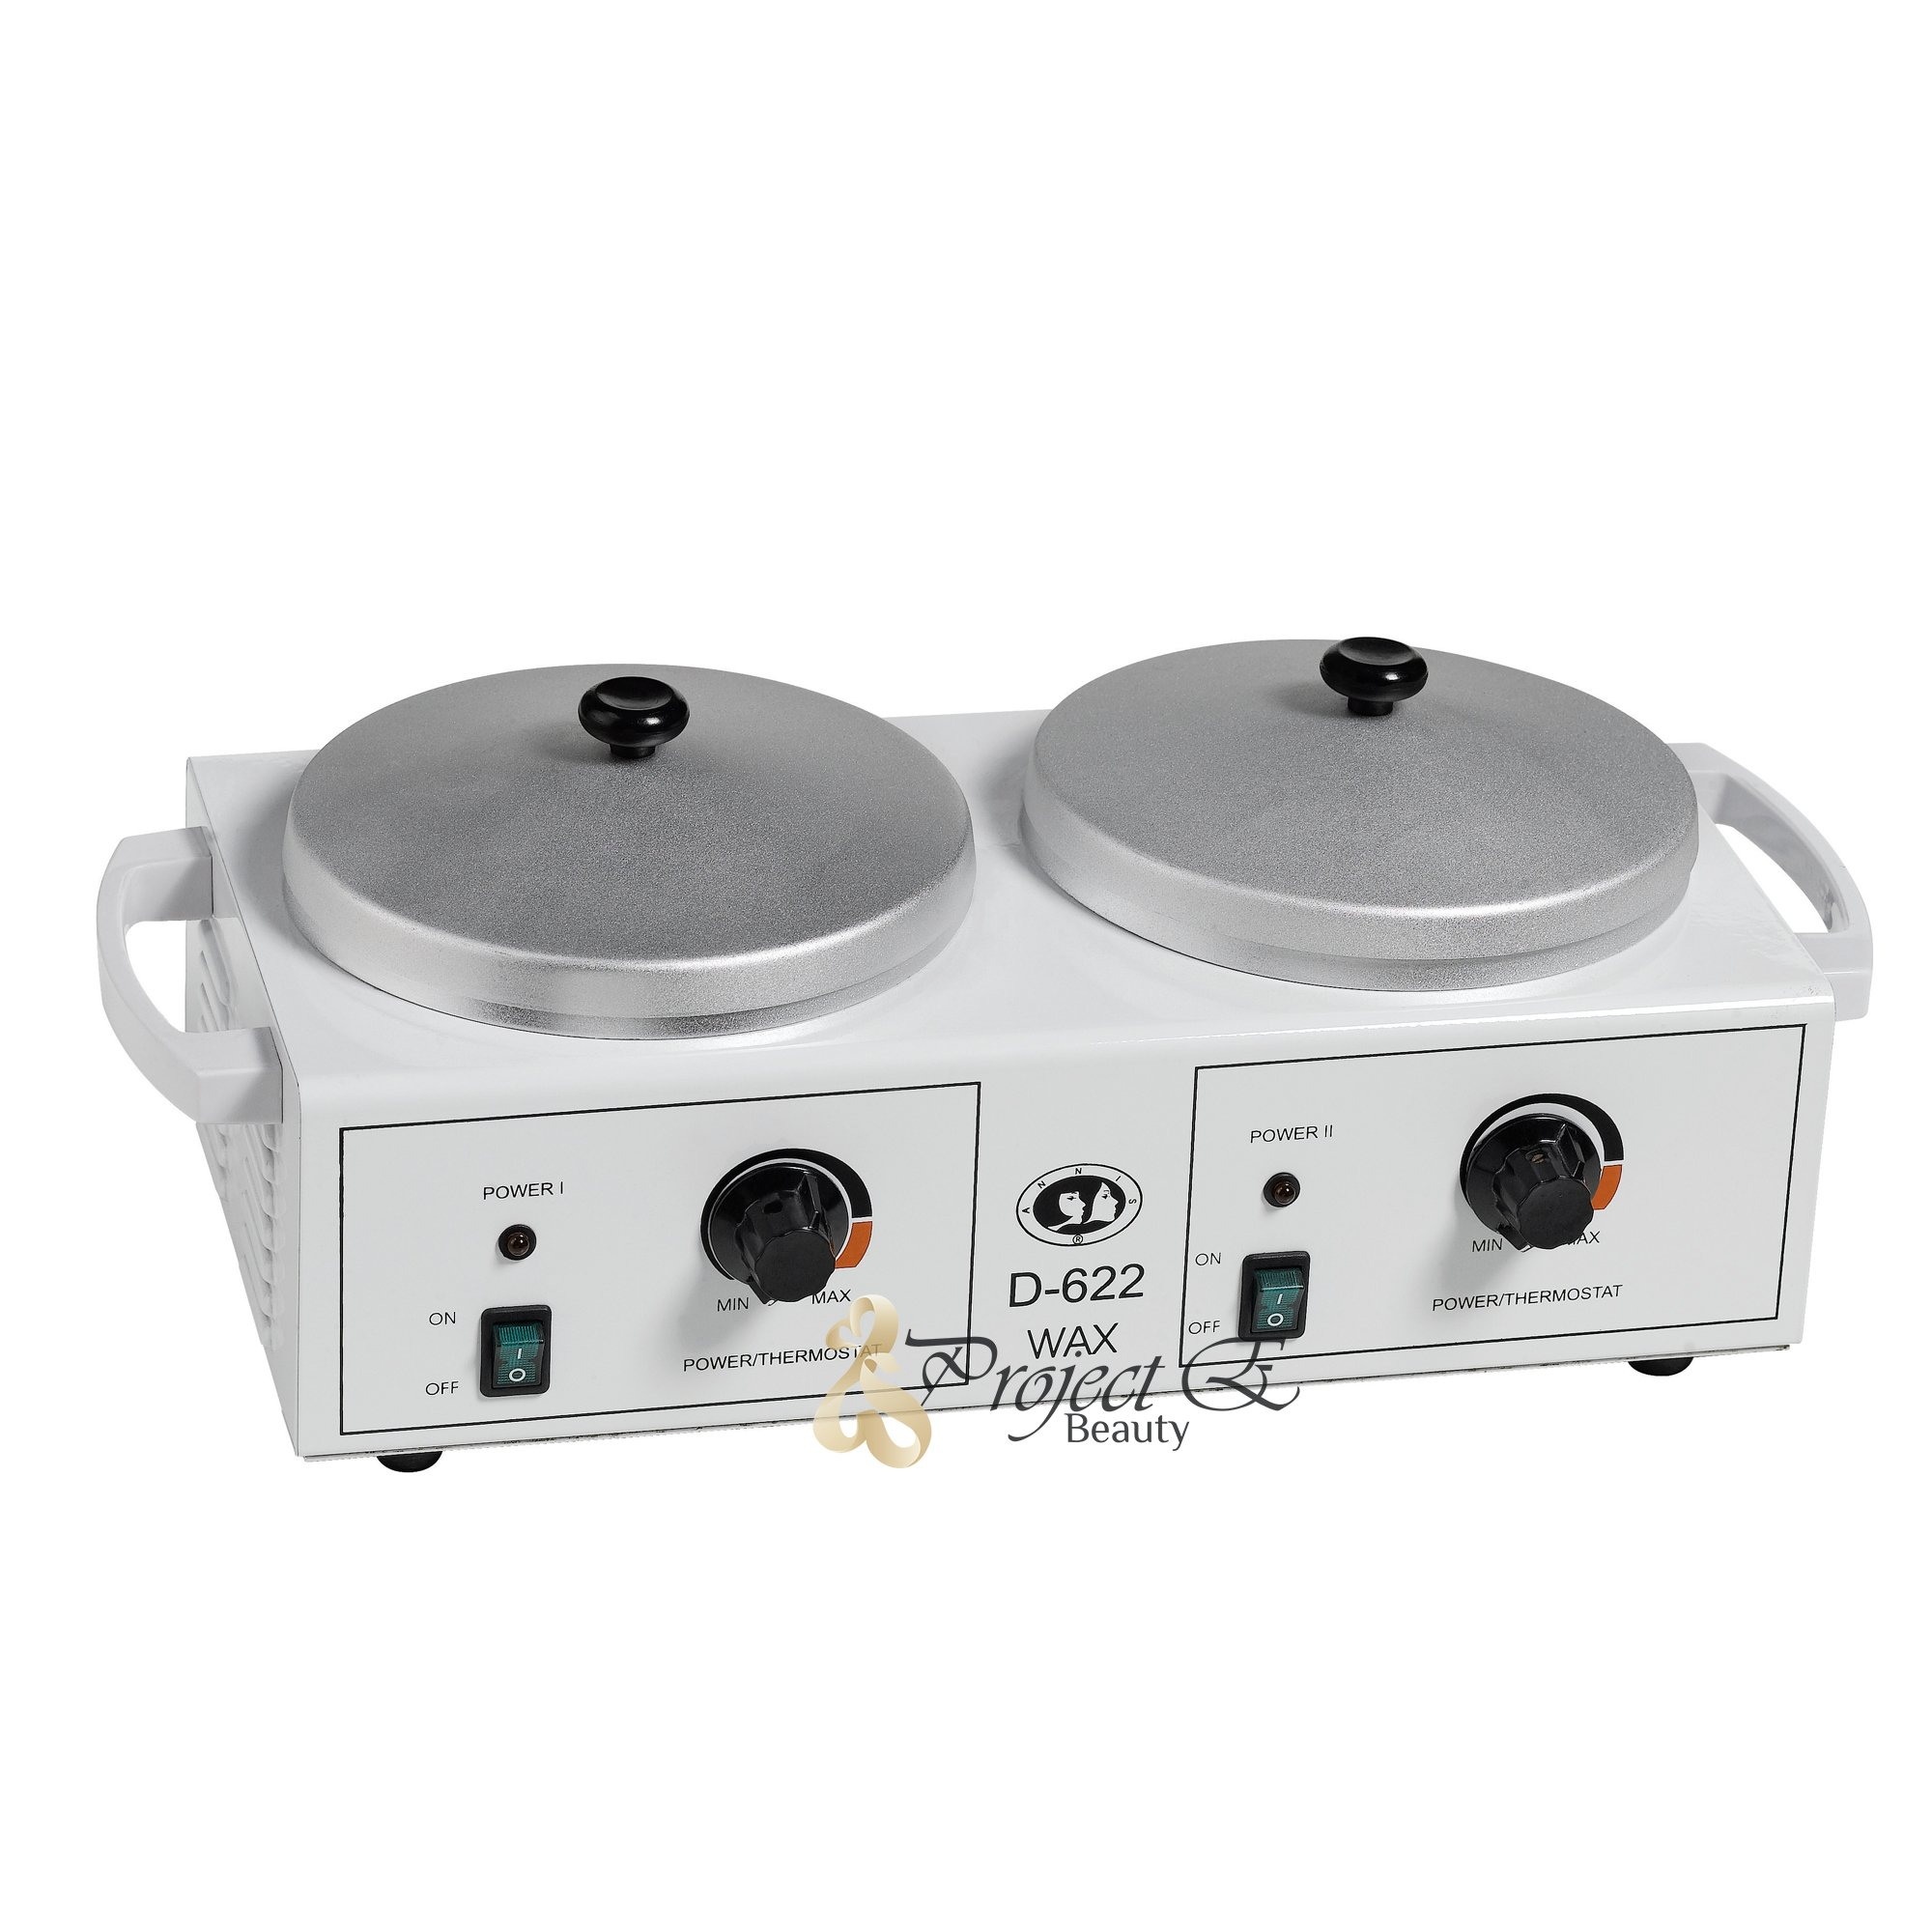 Project E Beauty Pro Wax Waxing Warmer Heater Candle Paraffin Salon Use Skin Care Spa Machine a